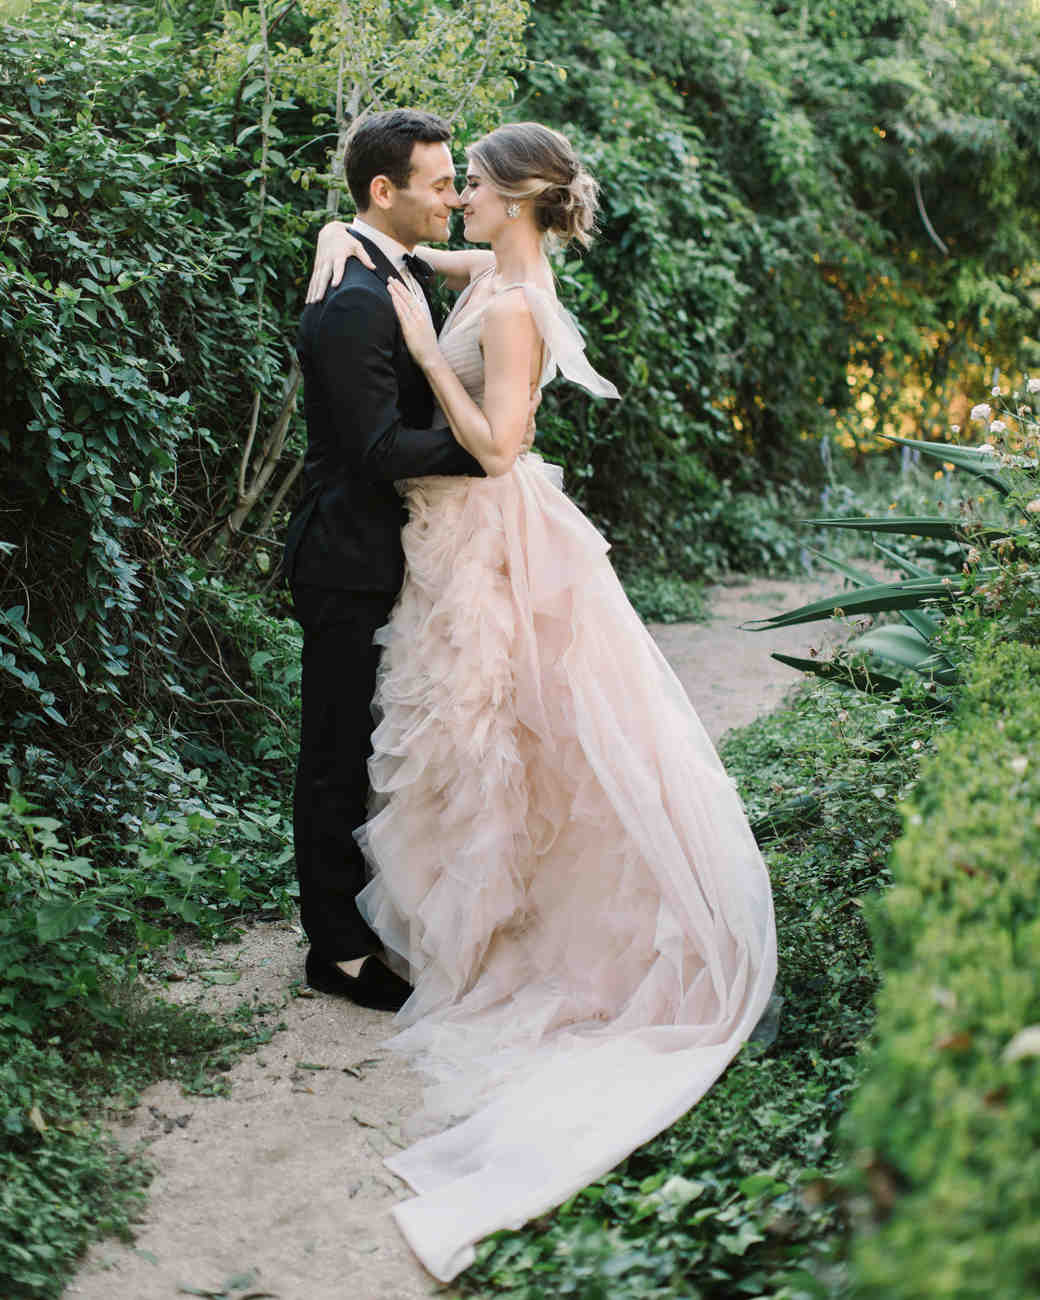 wedding couple portraits embrace greenery